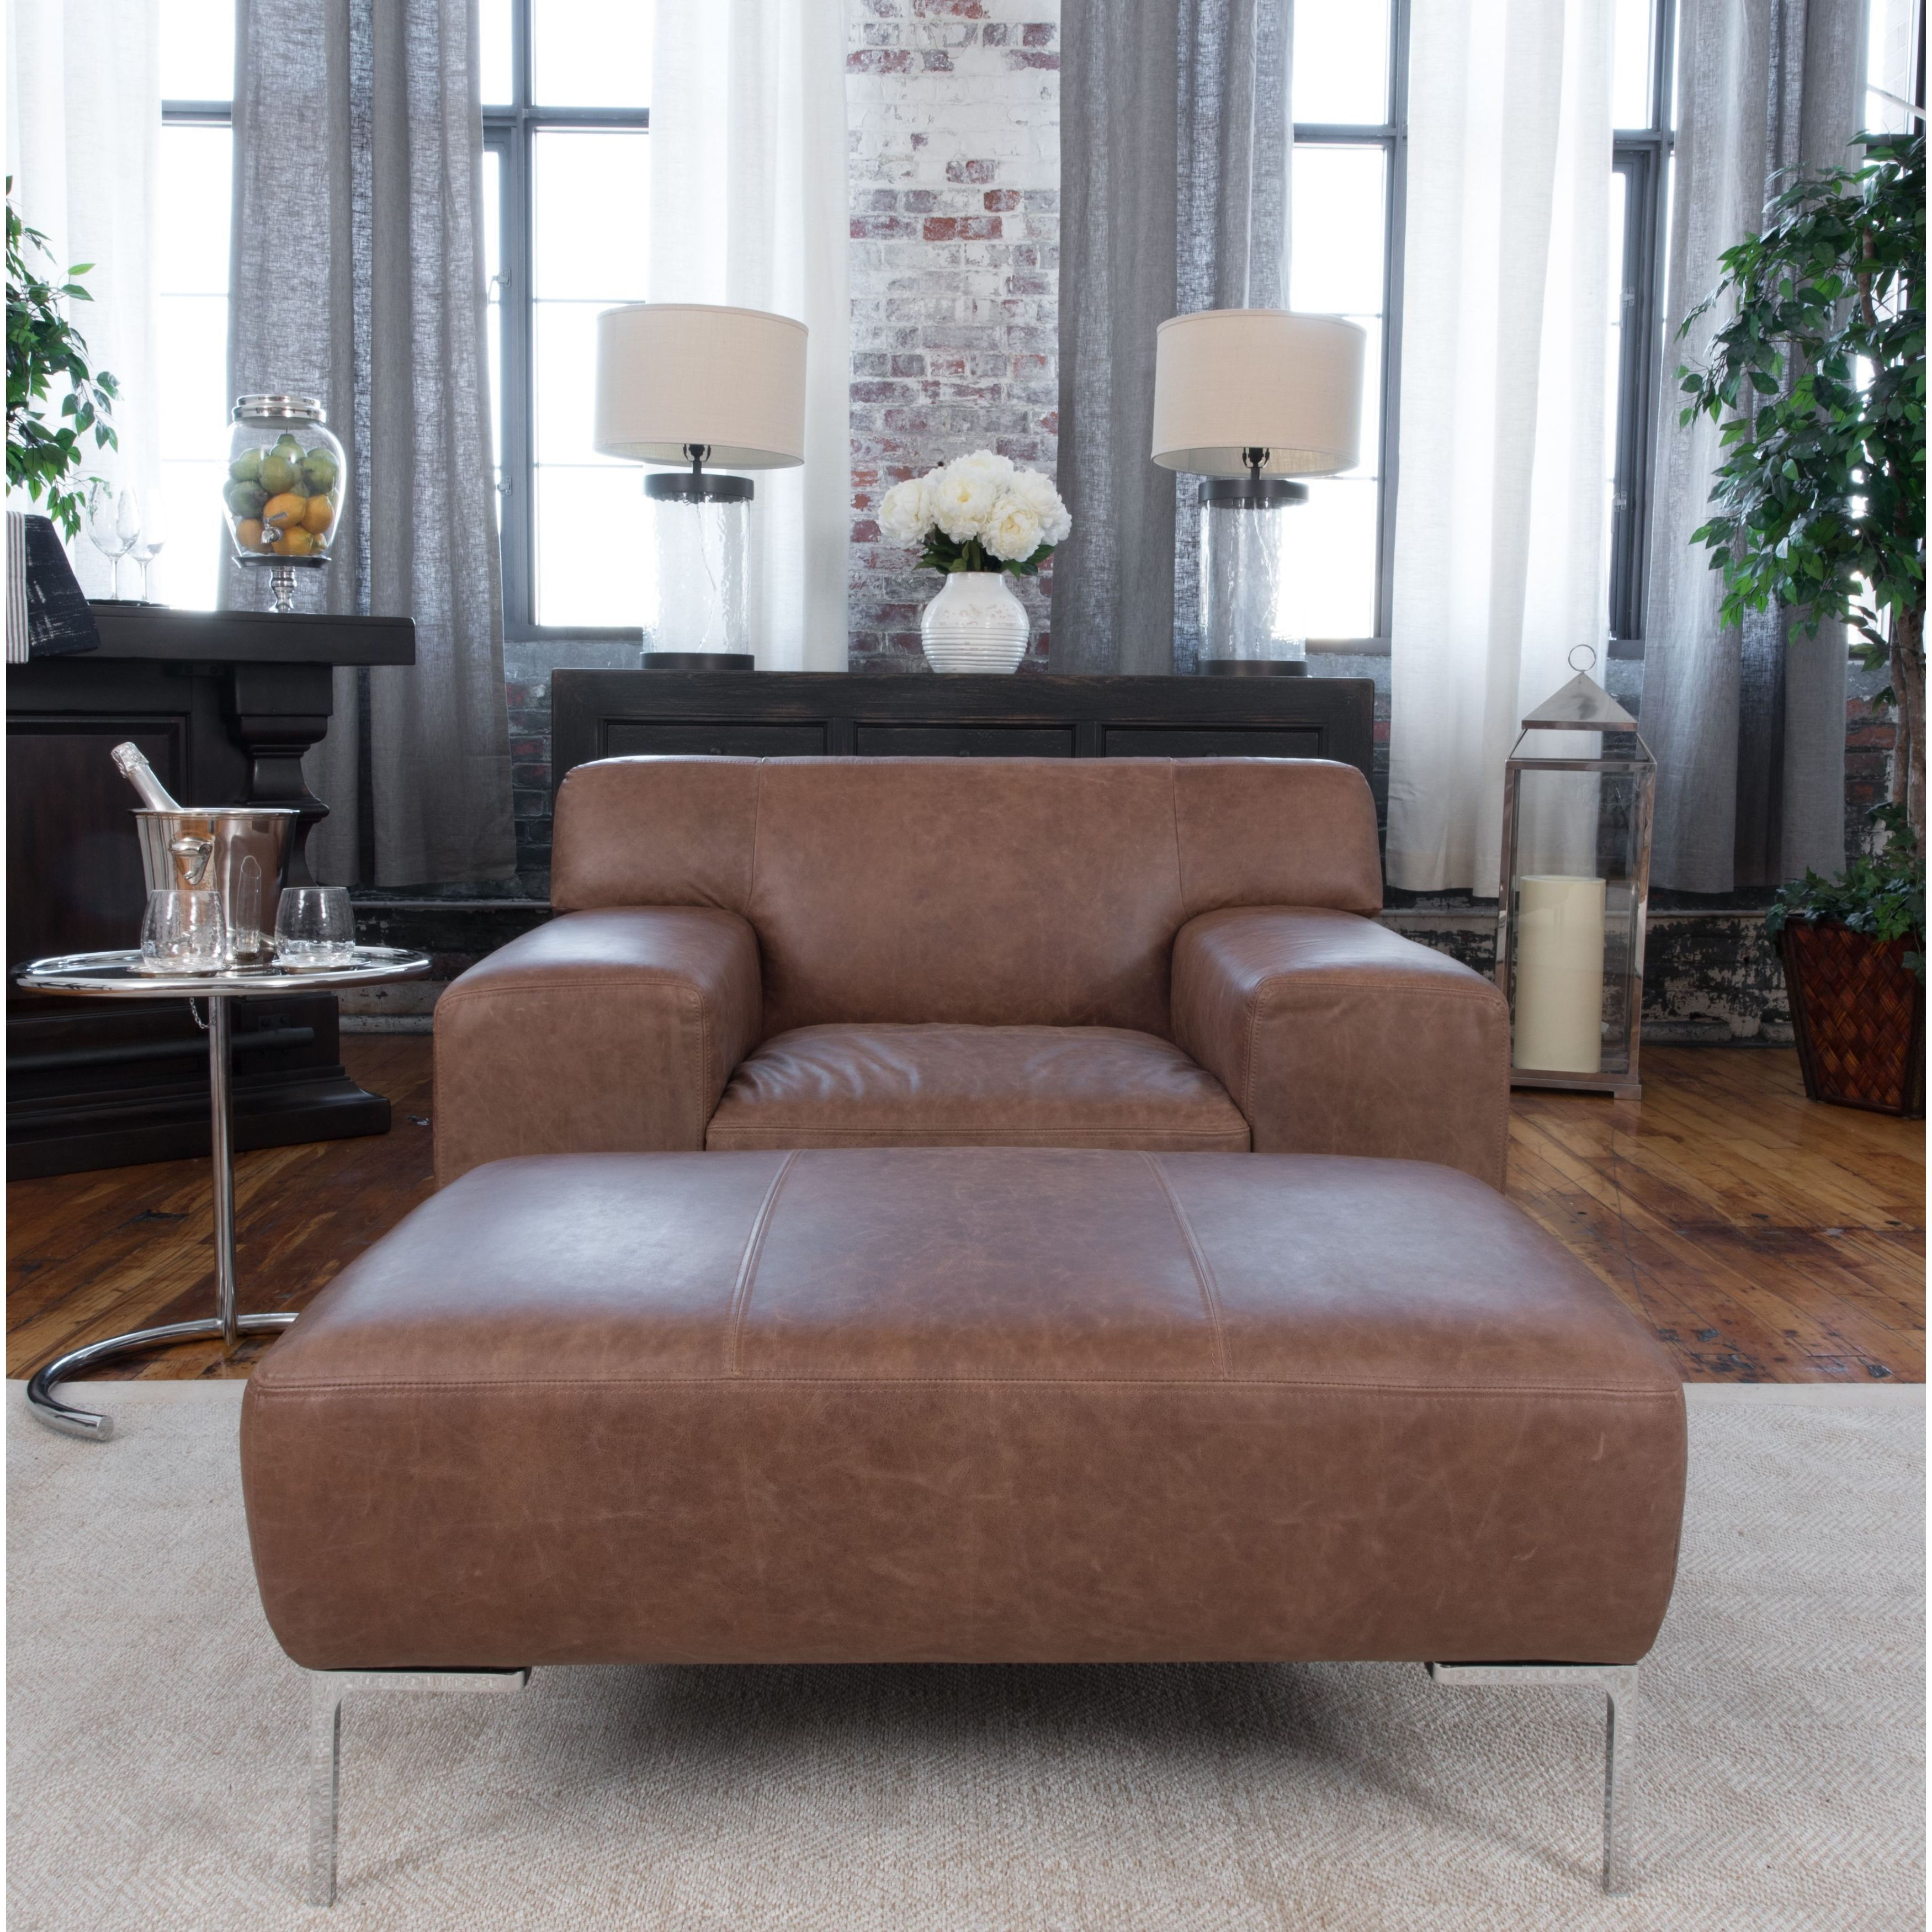 Industrial 2piece top grain leather set with oversized